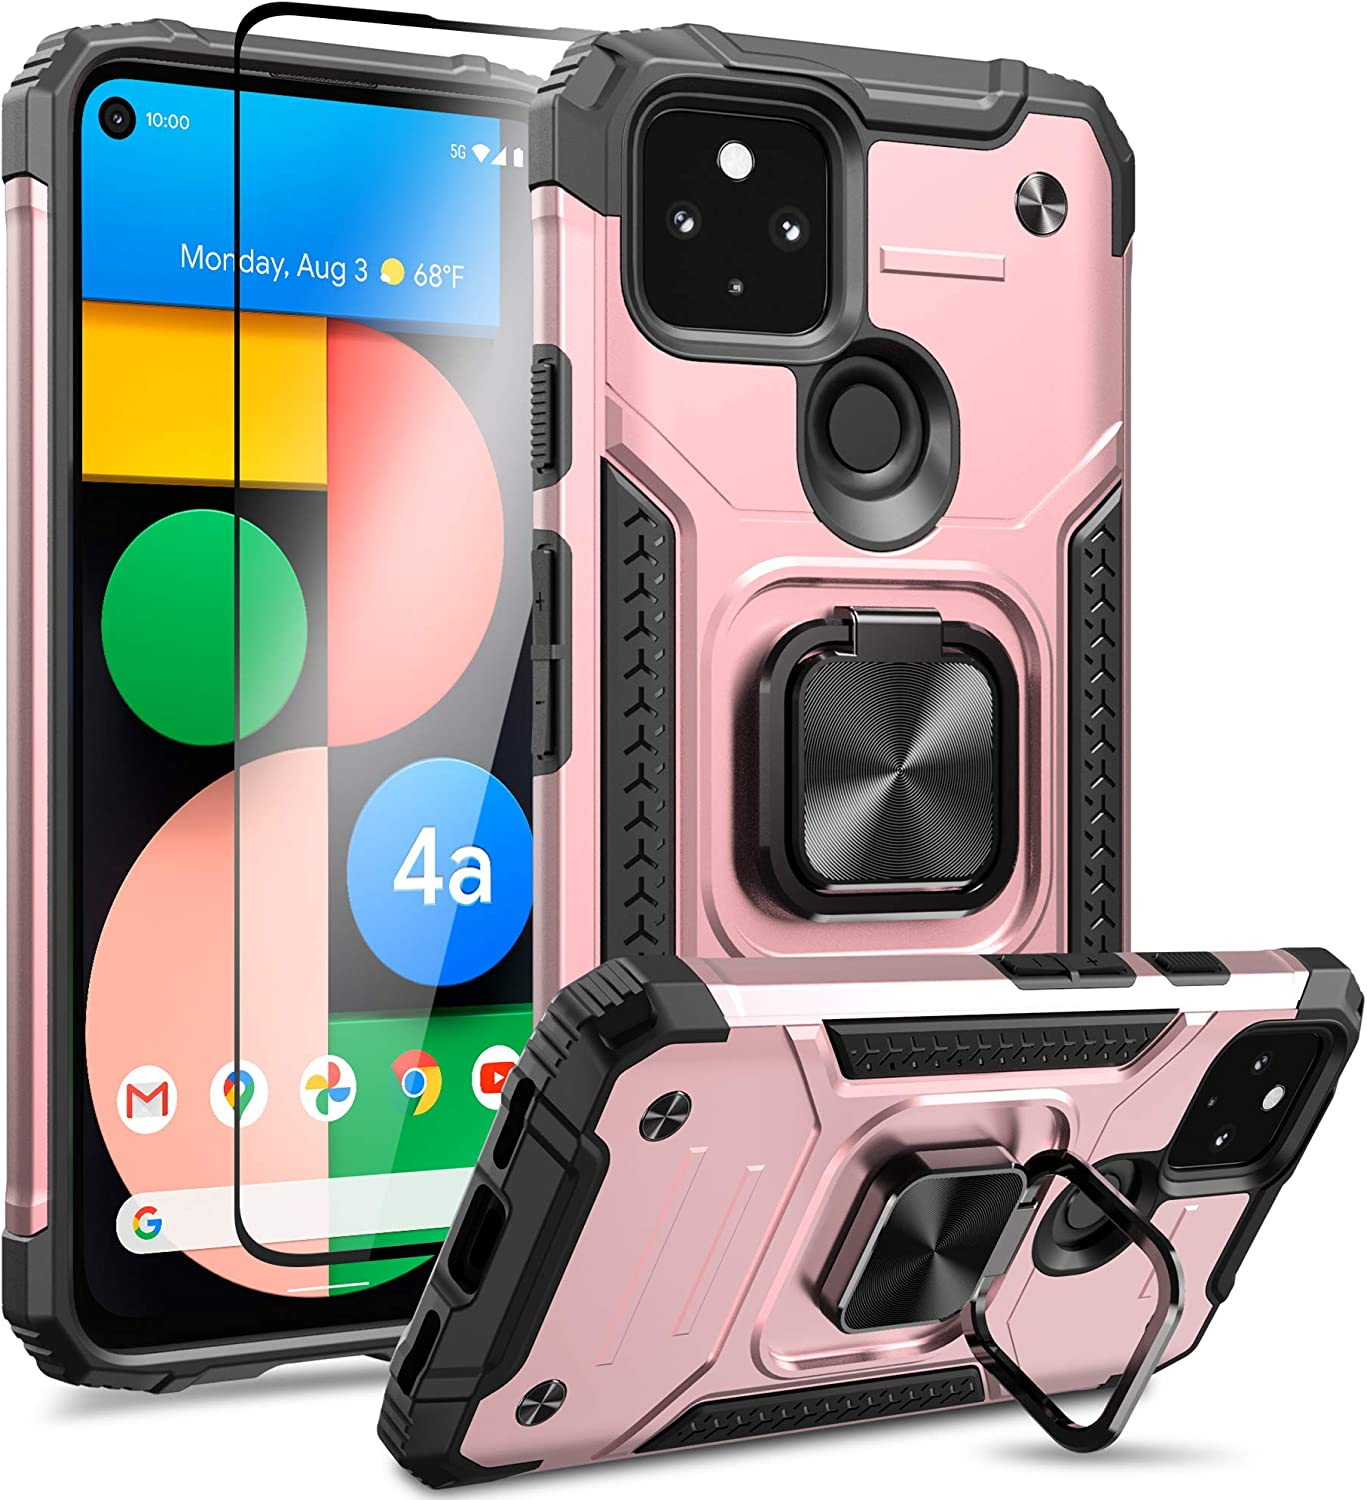 MMHUO for Google Pixel 4a 5G Case,(Not for Pixel 4a) Armor Protective Case for Pixel 4a 5G Case with Screen Protector, Magnetic Case with Ring Kickstand Phone Case for Pixel 4a 5G 6.2